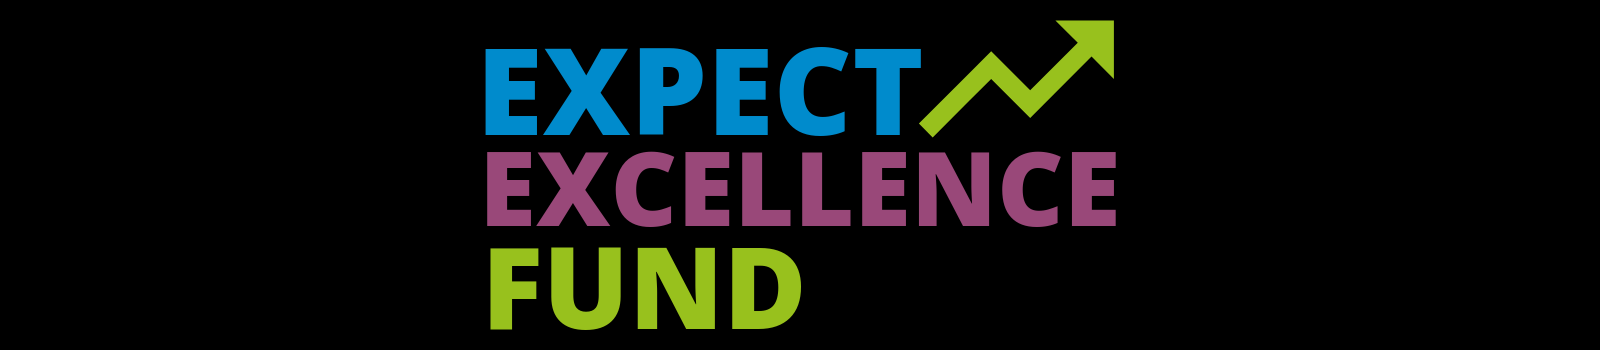 Expect Excellence Fund